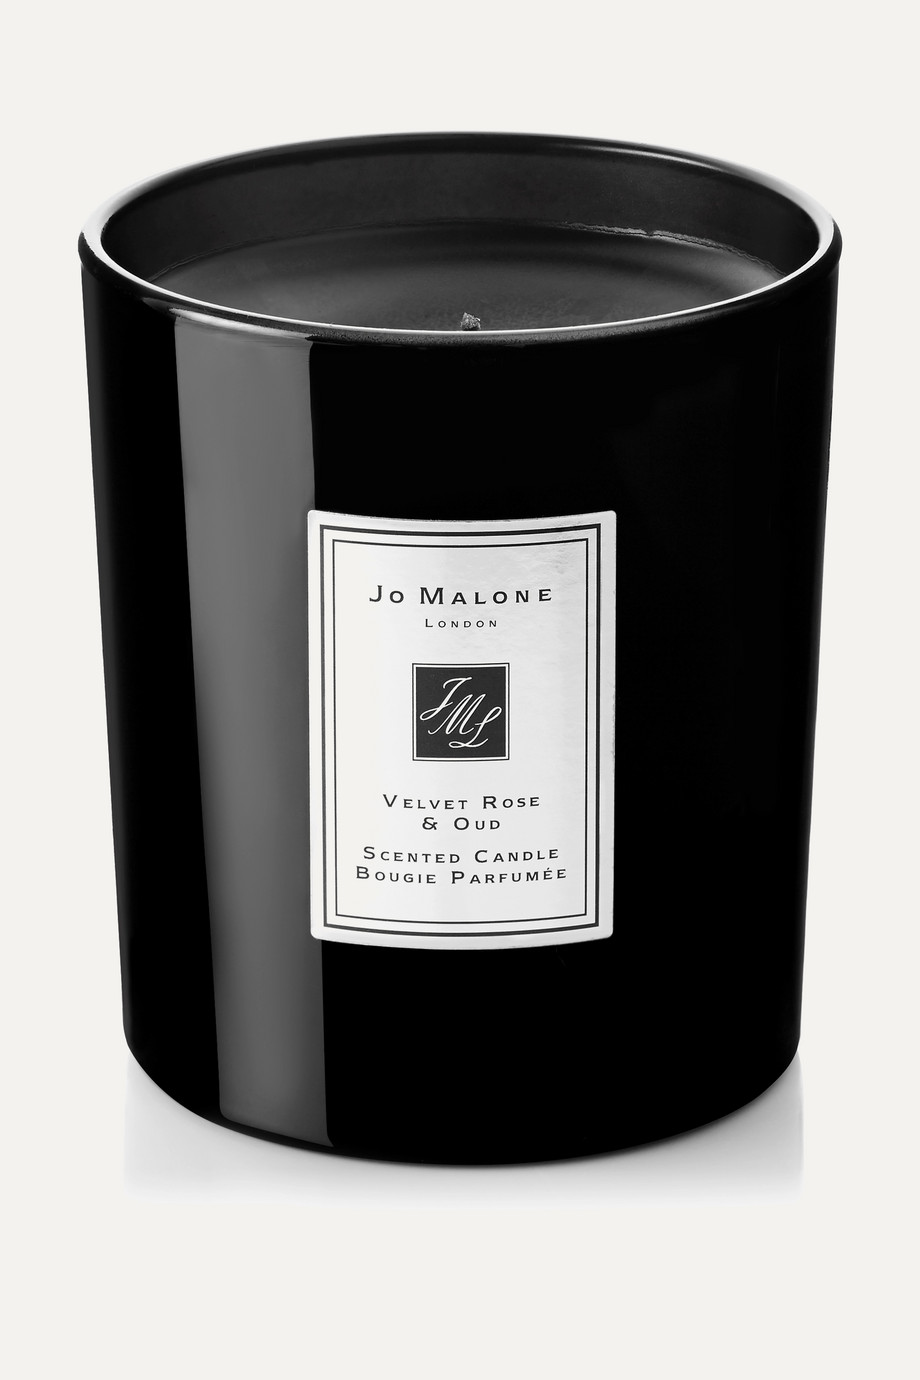 Jo Malone London Velvet Rose & Oud Scented Home Candle, 200g